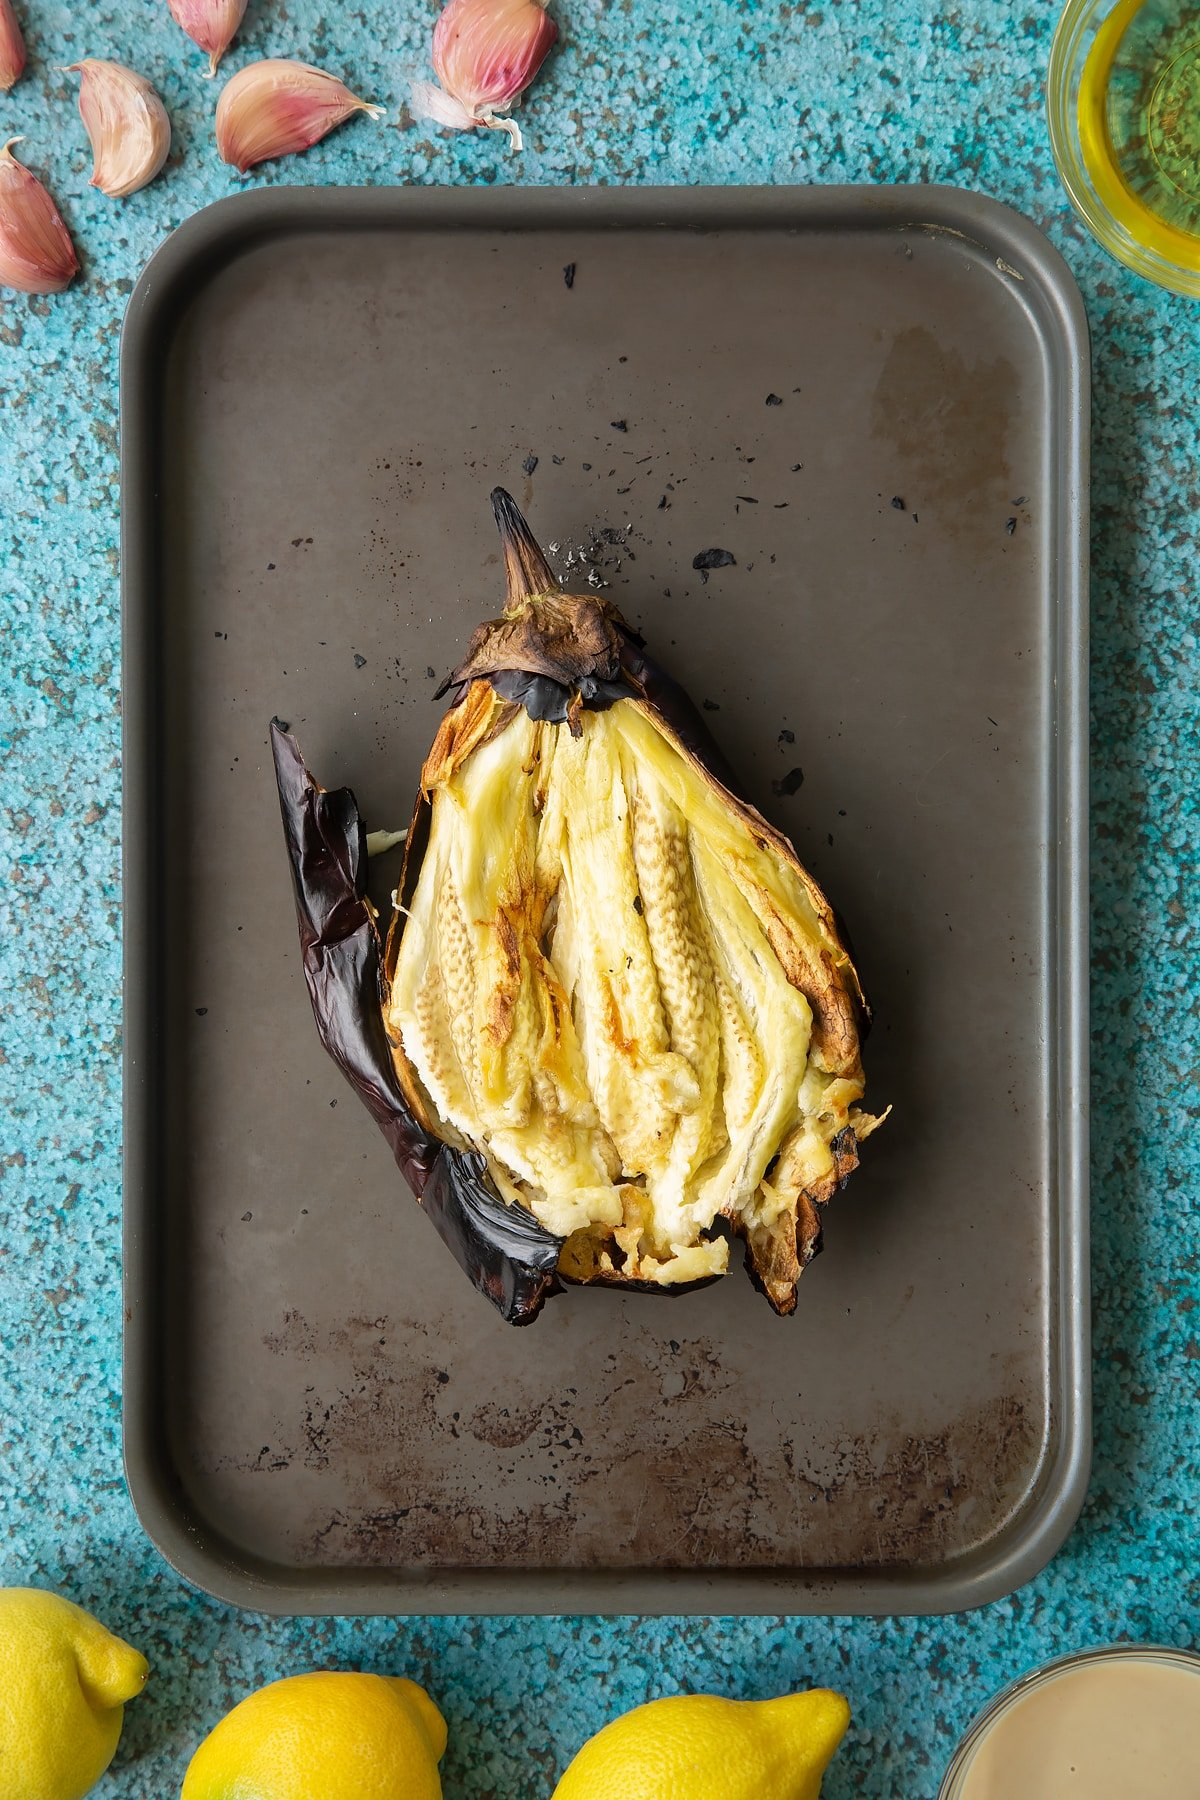 A charred aubergine on a baking tray. It has been torn open to reveal the flesh inside. Ingredients to make an easy baba ganoush recipe surround the tray.